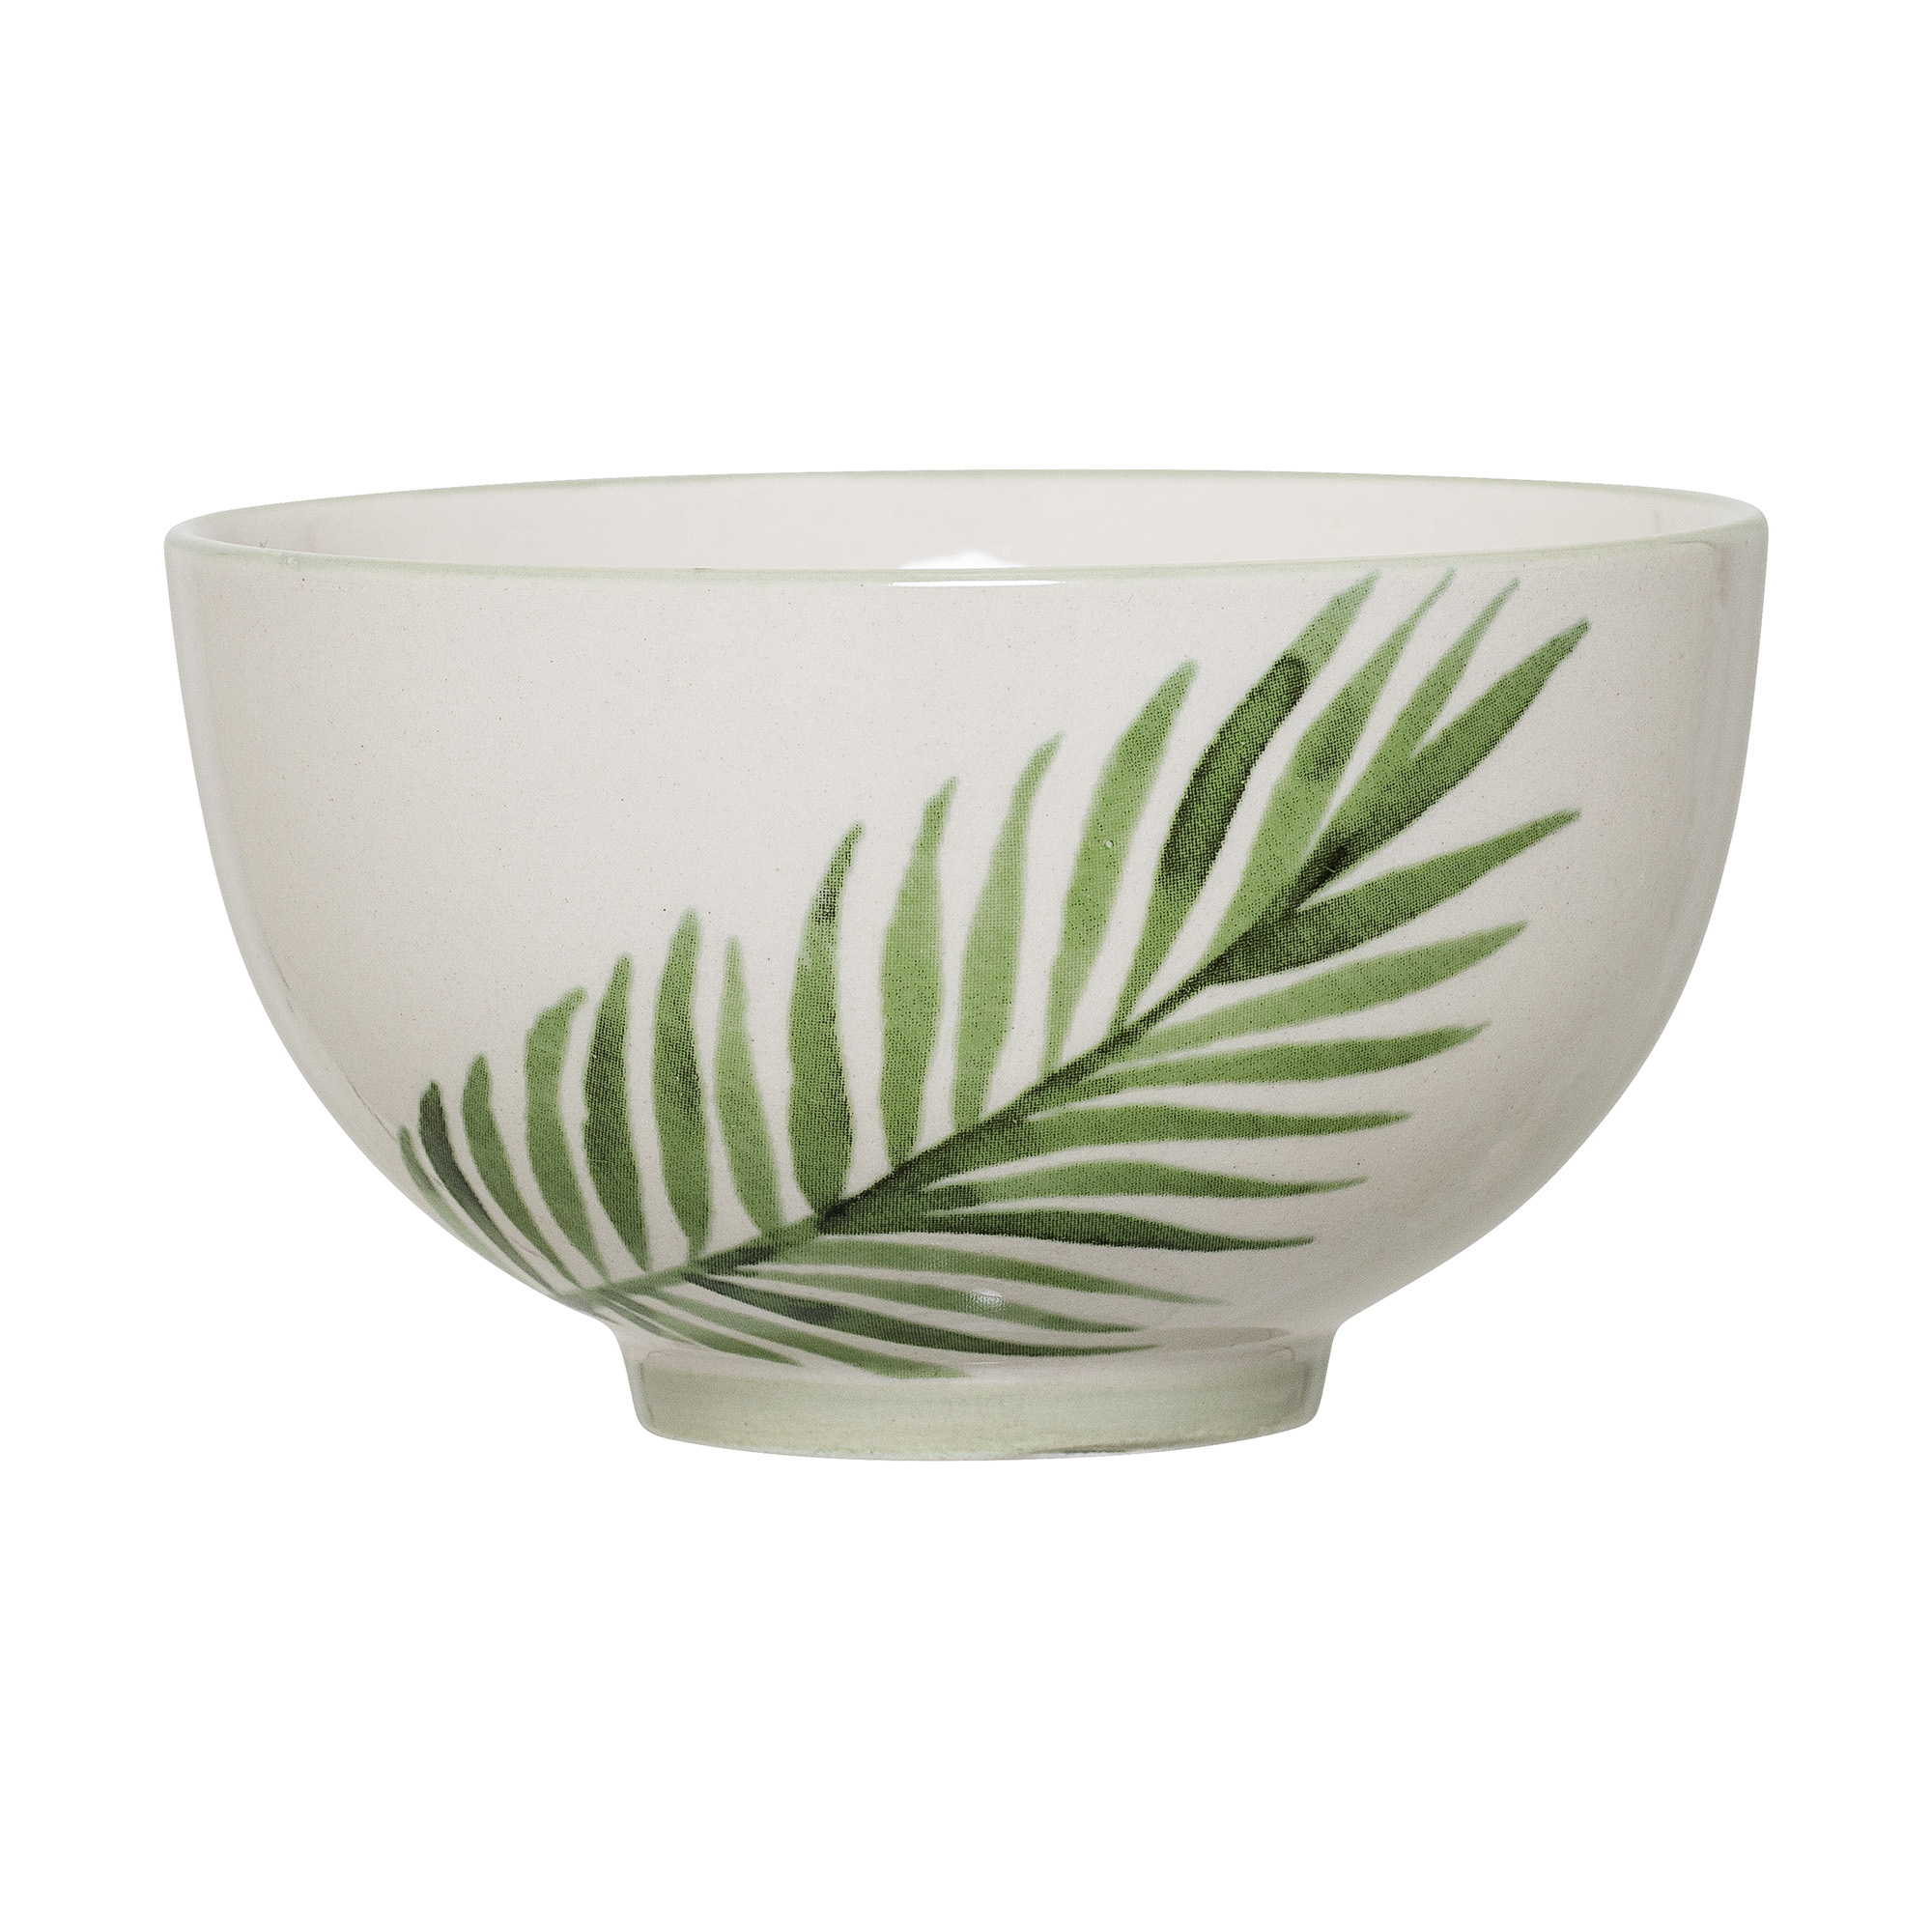 #003 Palm Small Sharing Bowl   11.5cm x H6.5cm Hire Price - £1.50 Minimum Order 5 Current Stock Available 30